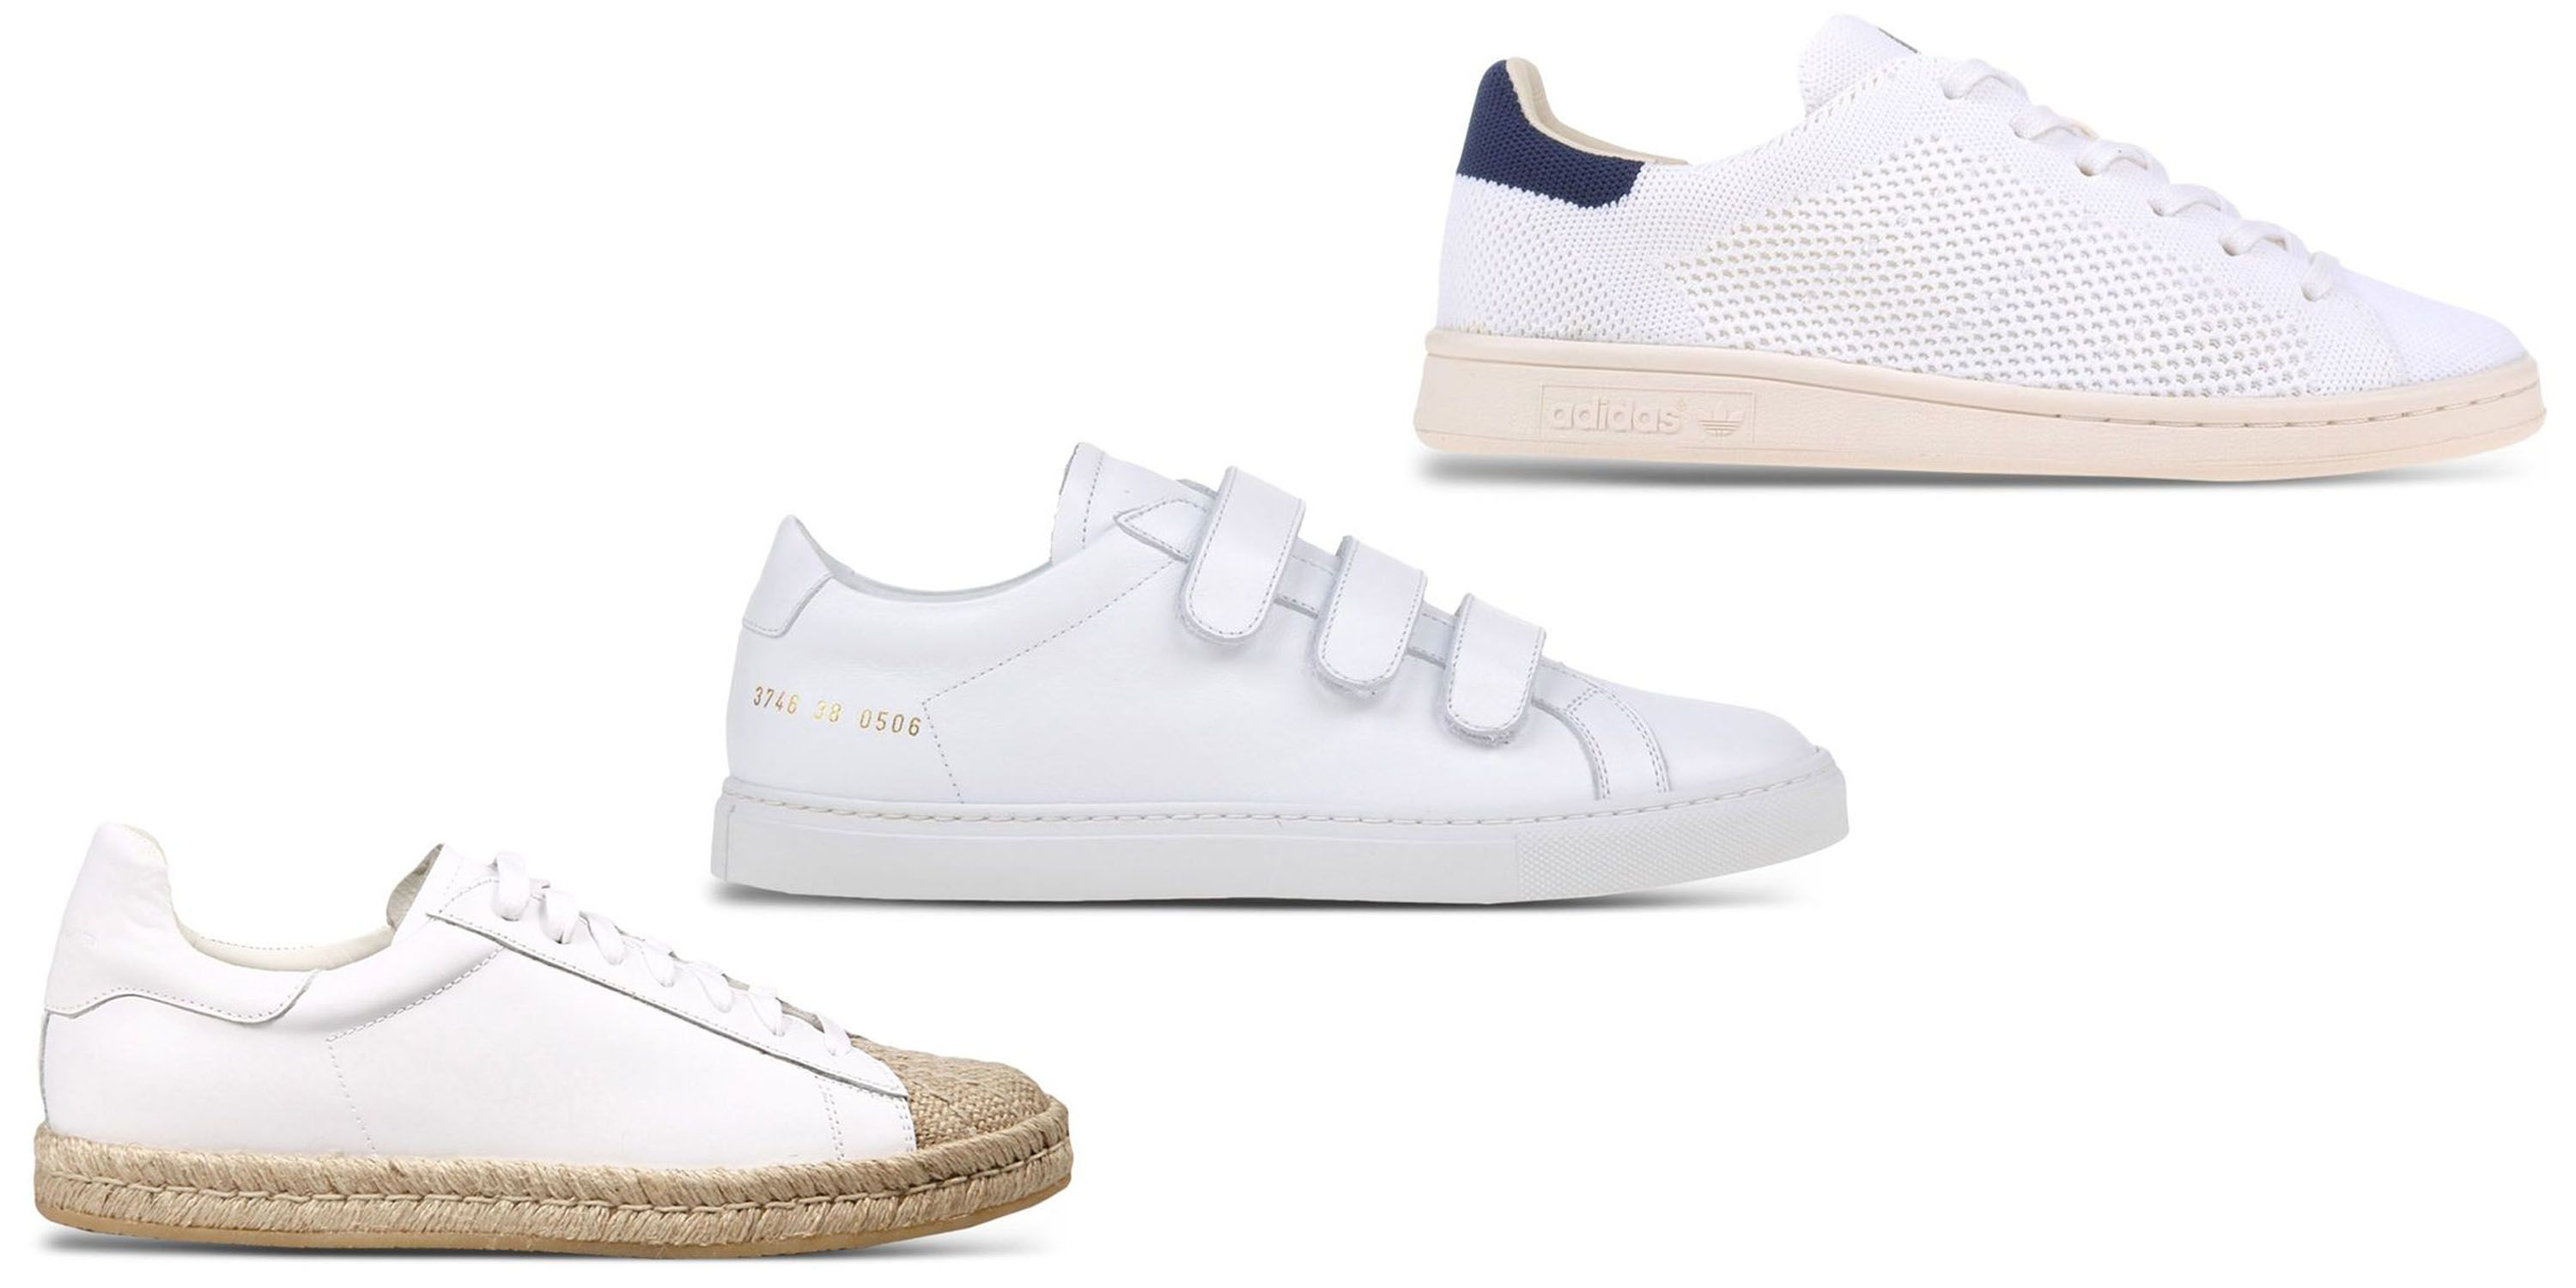 "<p>Whether you're lounging around or playing ball, white sneakers are both on-point and practical. </p><p><br></p><p><em><strong>Alexander Wang </strong>espadrille sneaker, $455,<strong> <a href=""https://shop.harpersbazaar.com/designers/a/alexander-wang/white-espadrille-sneaker-8857.html"" target=""_blank"">shopBAZAAR.com</a></strong></em><span class=""redactor-invisible-space""><em>; <strong>Woman by Common Project</strong>s sneaker, $435, <strong><a href=""https://shop.harpersbazaar.com/designers/w/woman-by-common-projects/white-velcro-low-top-sneaker-8870.html"" target=""_blank"">shopBAZAAR.com</a></strong></em><span class=""redactor-invisible-space""><em><strong><a href=""https://shop.harpersbazaar.com/designers/w/woman-by-common-projects/white-velcro-low-top-sneaker-8870.html""></a></strong>; <strong>Adidas Originals</strong> sneaker, $130, <strong><a href=""https://shop.harpersbazaar.com/designers/a/adidas-originals/white-low-top-sneaker-9081.html"" target=""_blank"">shopBAZAAR.com</a></strong></em><span class=""redactor-invisible-space""><em>.</em></span></span><br></span></p>"